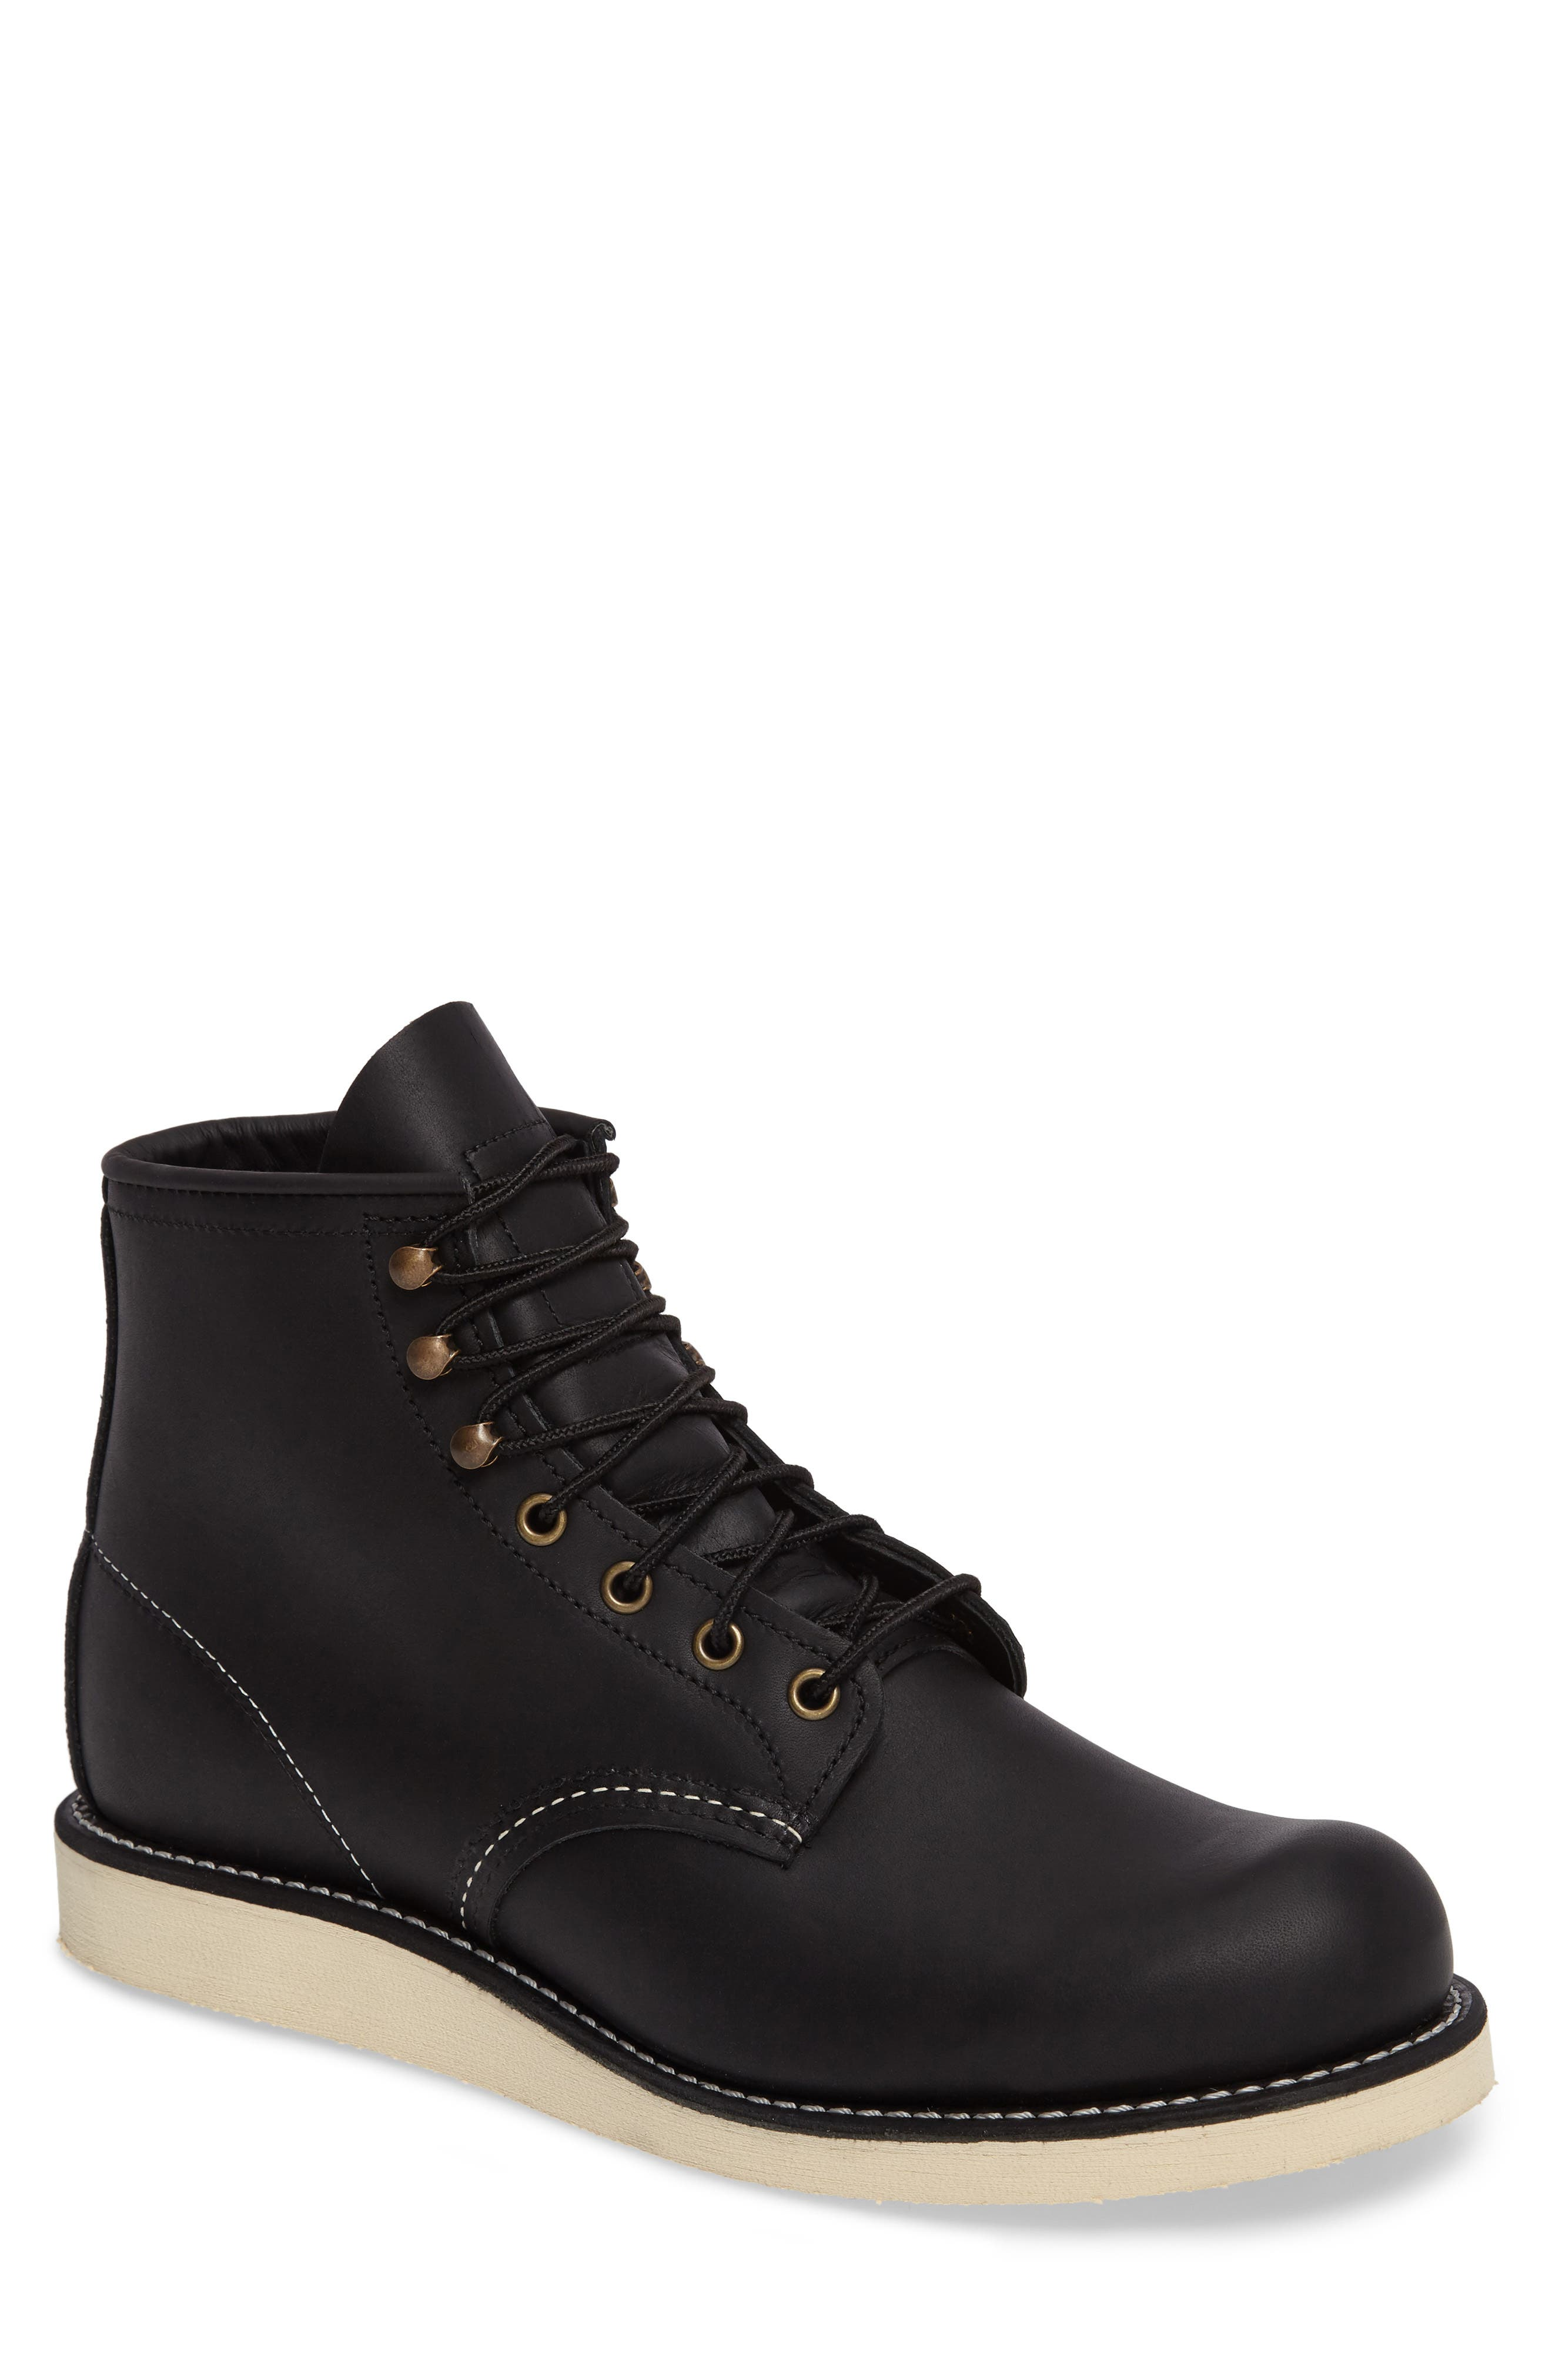 RED WING,                             Rover Plain Toe Boot,                             Main thumbnail 1, color,                             BLACK HARNESS LEATHER